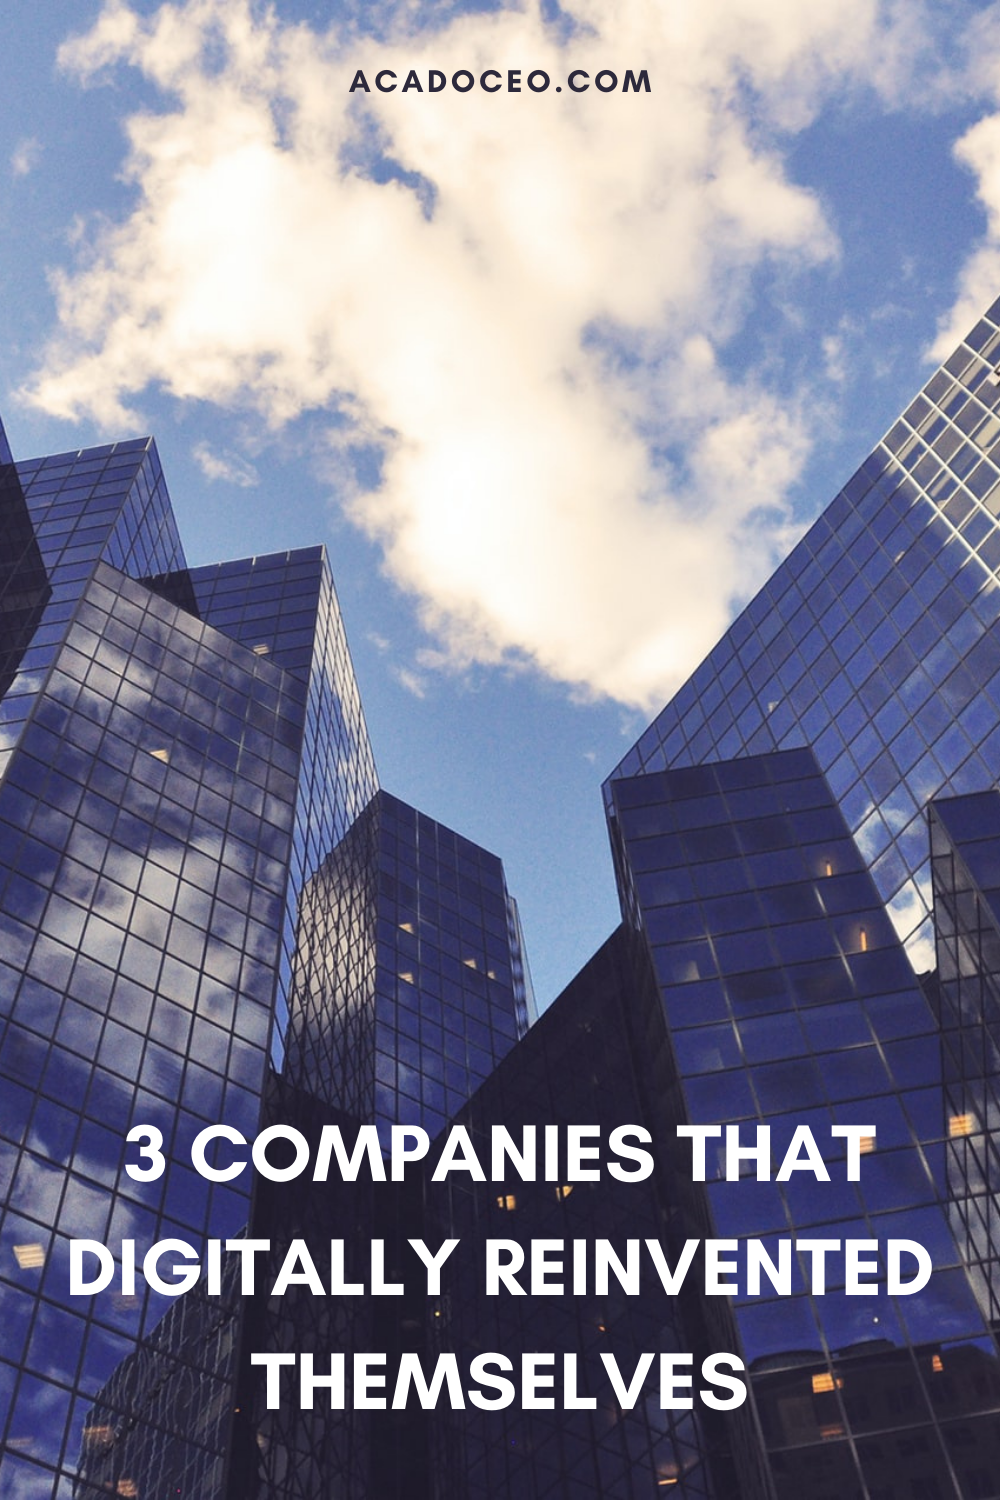 3 COMPANIES THAT DIGITALLY REINVENTED THEMSELVES